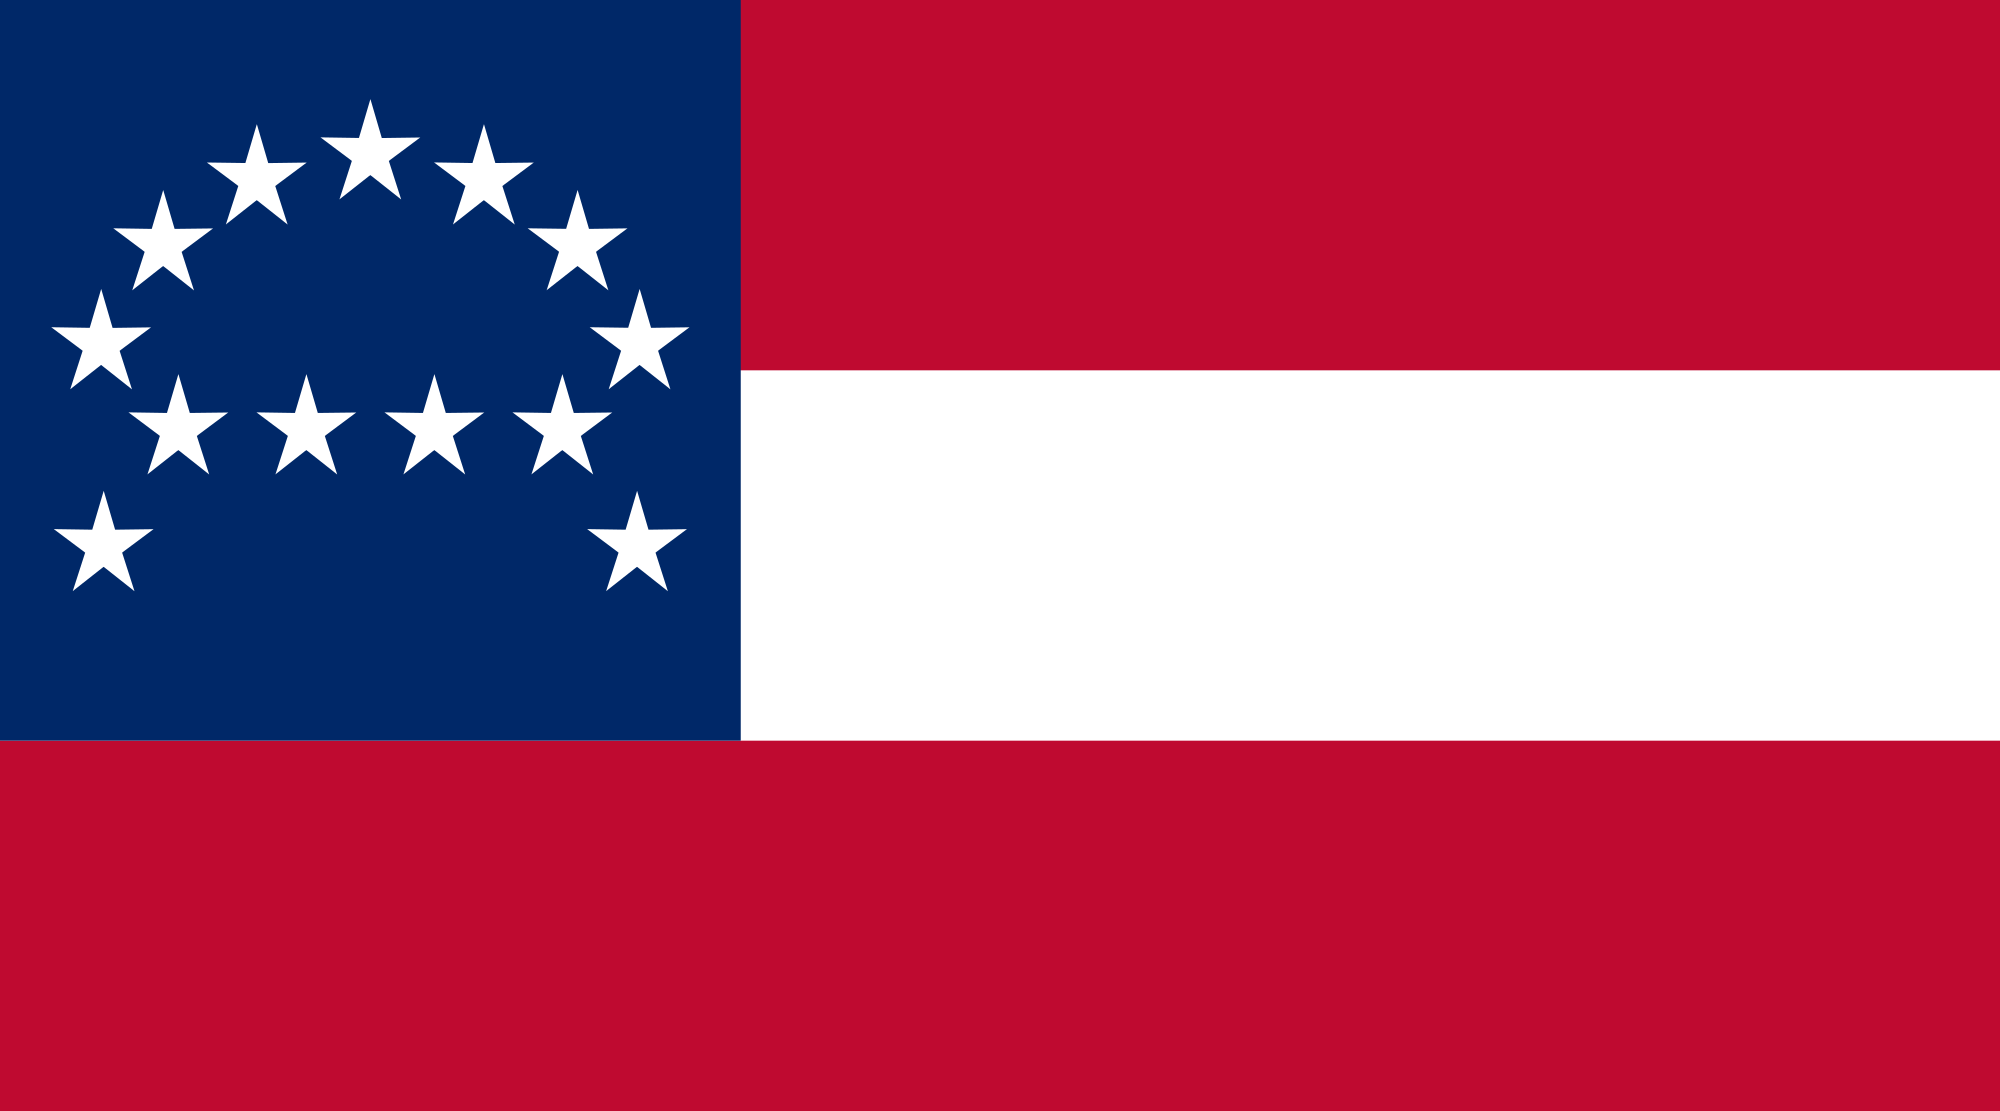 Pin On Confederate States Of America